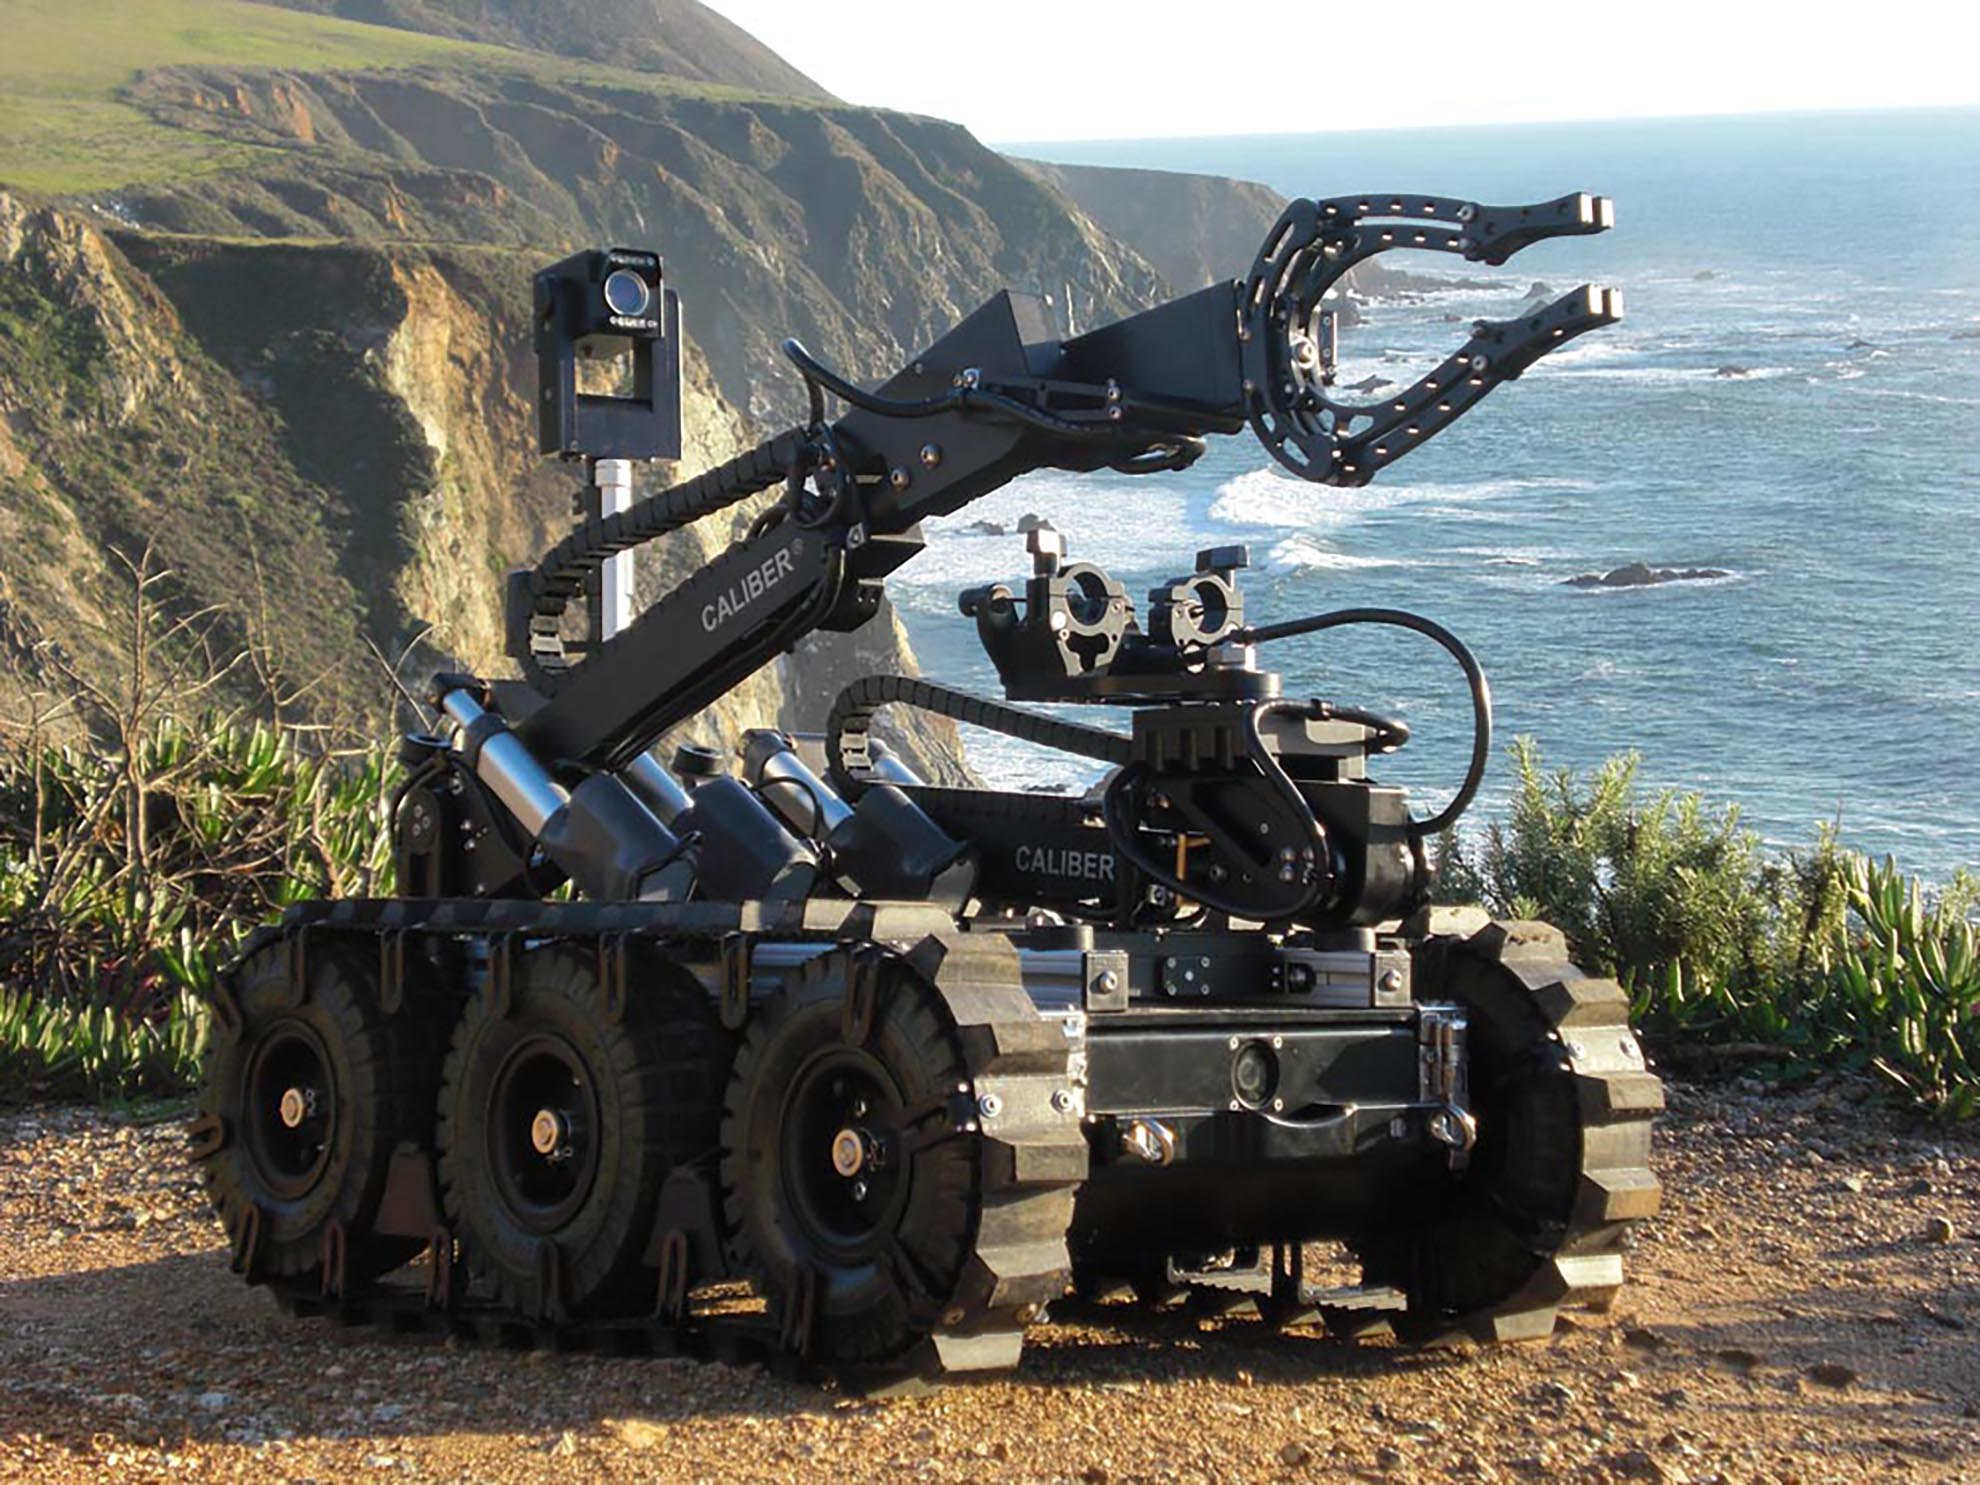 mk3-caliber-eod-robot-on-the-cliff